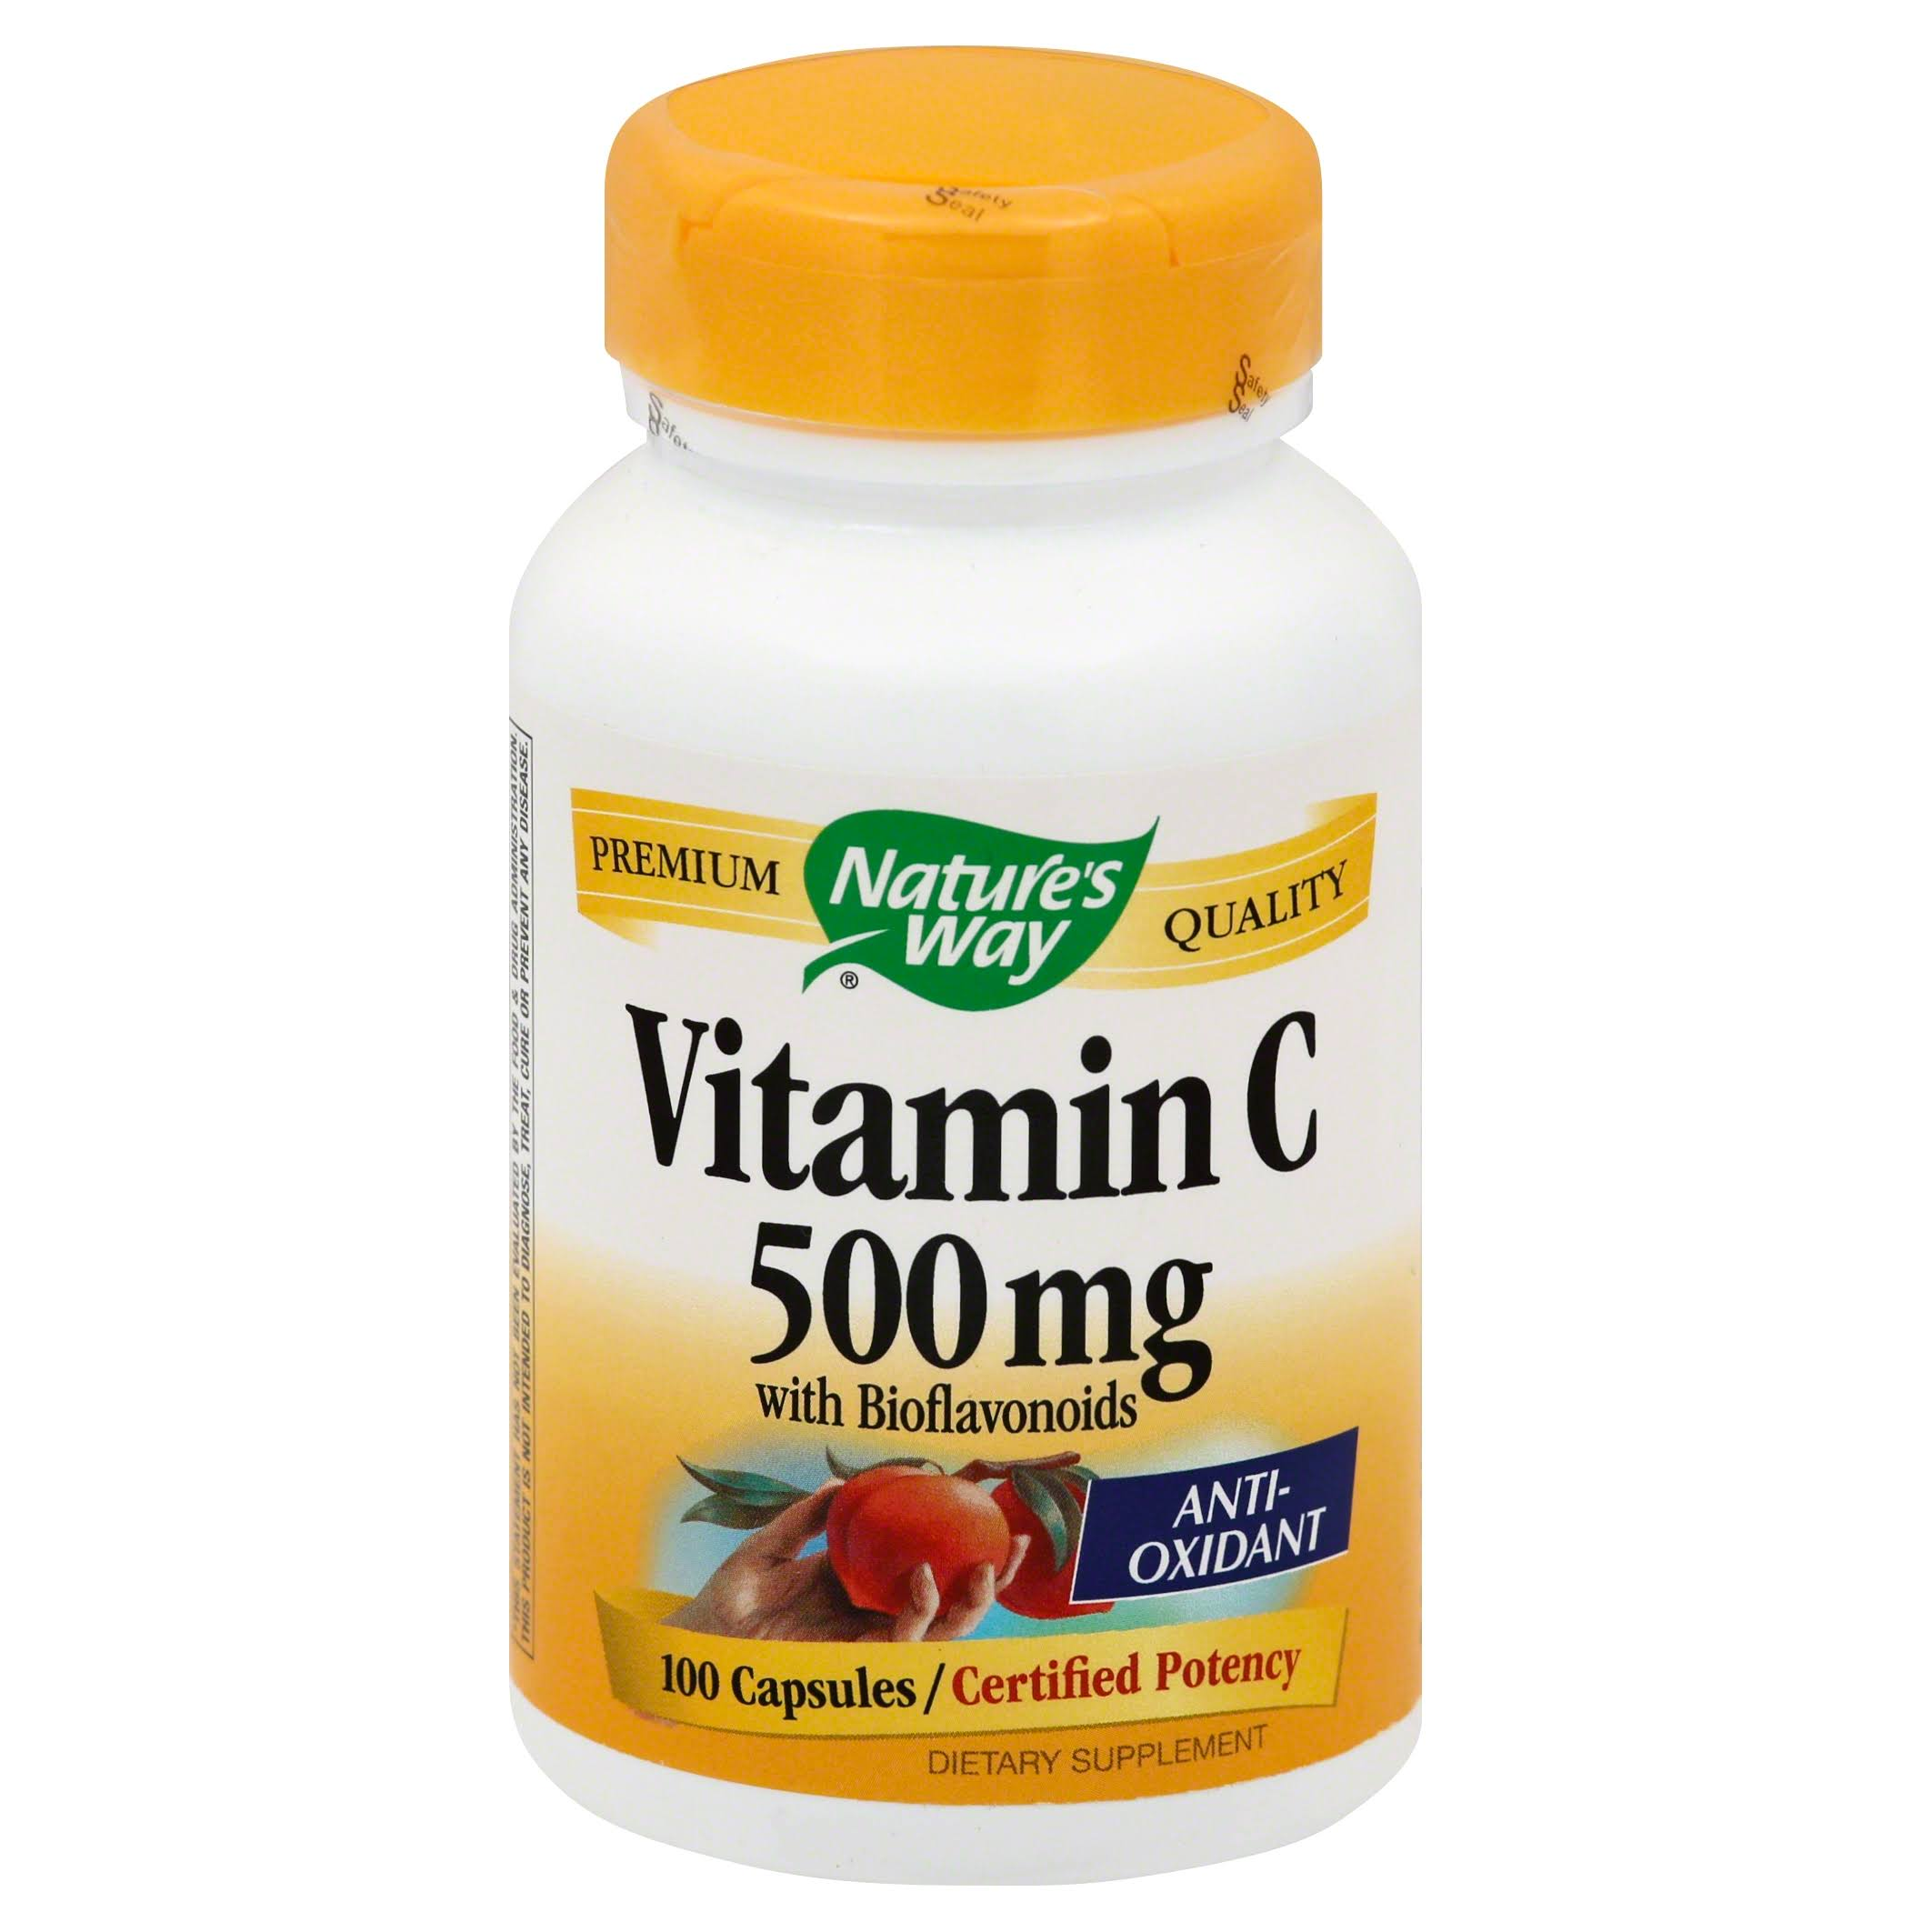 Nature's Way Vitamin C 500 Supplement - 100 Capsules